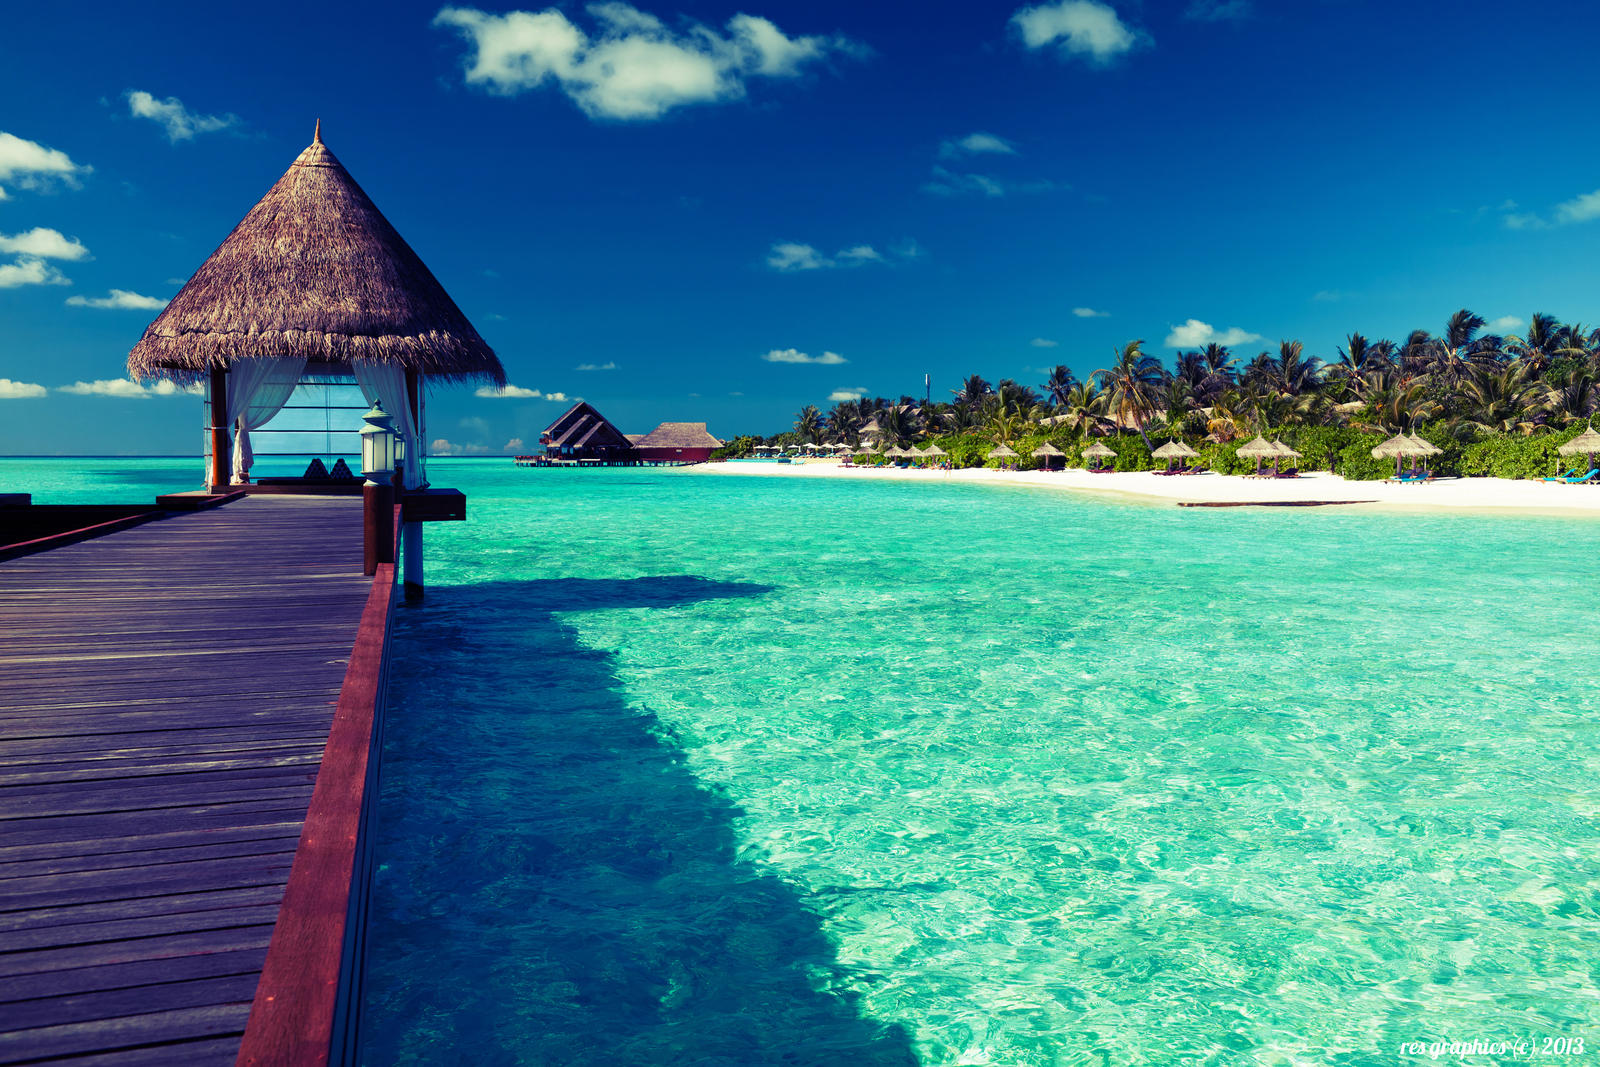 Tropical Island Getaways: Posts During January 2014 For Stormer99